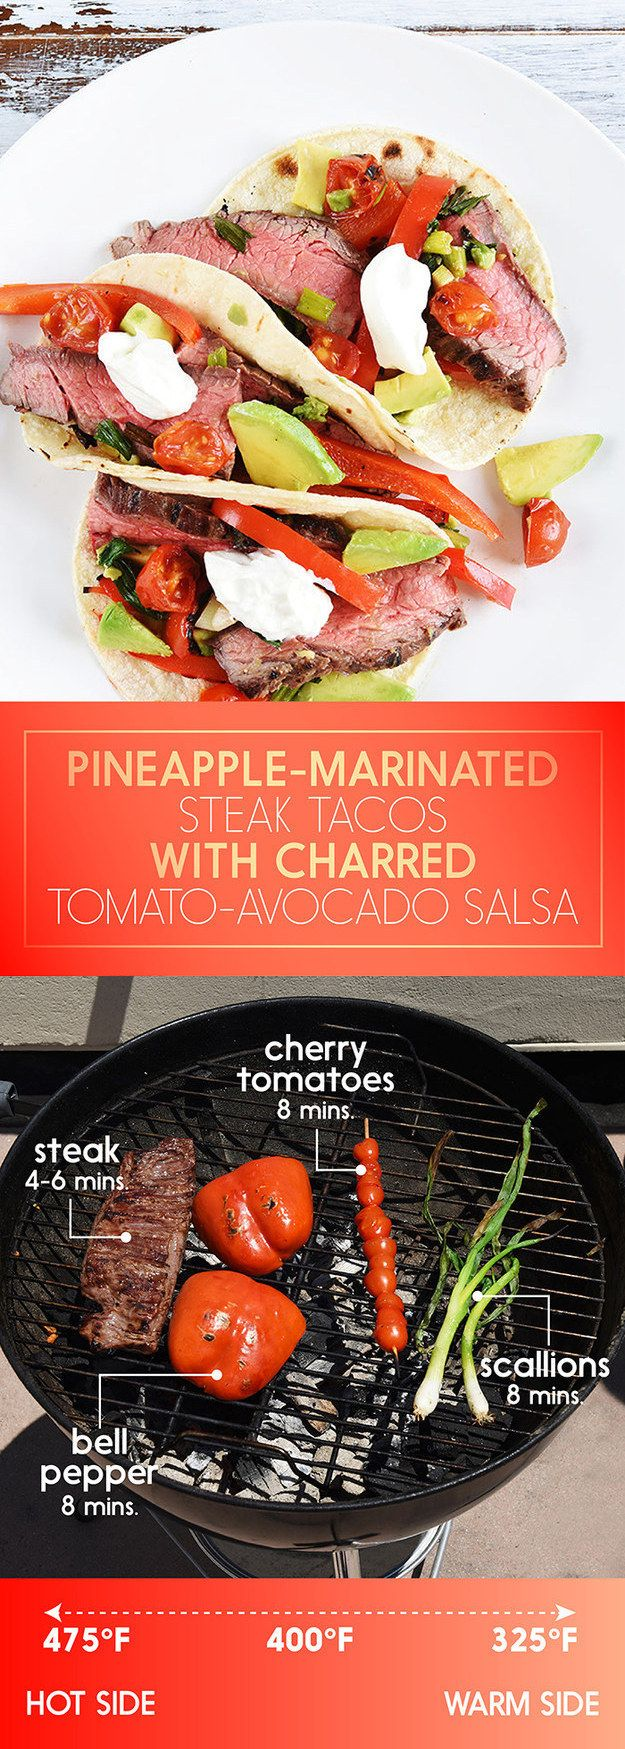 Pineapple-Marinated Steak Tacos with Charred Tomato-Avocado Salsa | 5 30-Minute Dinners To Grill This Week